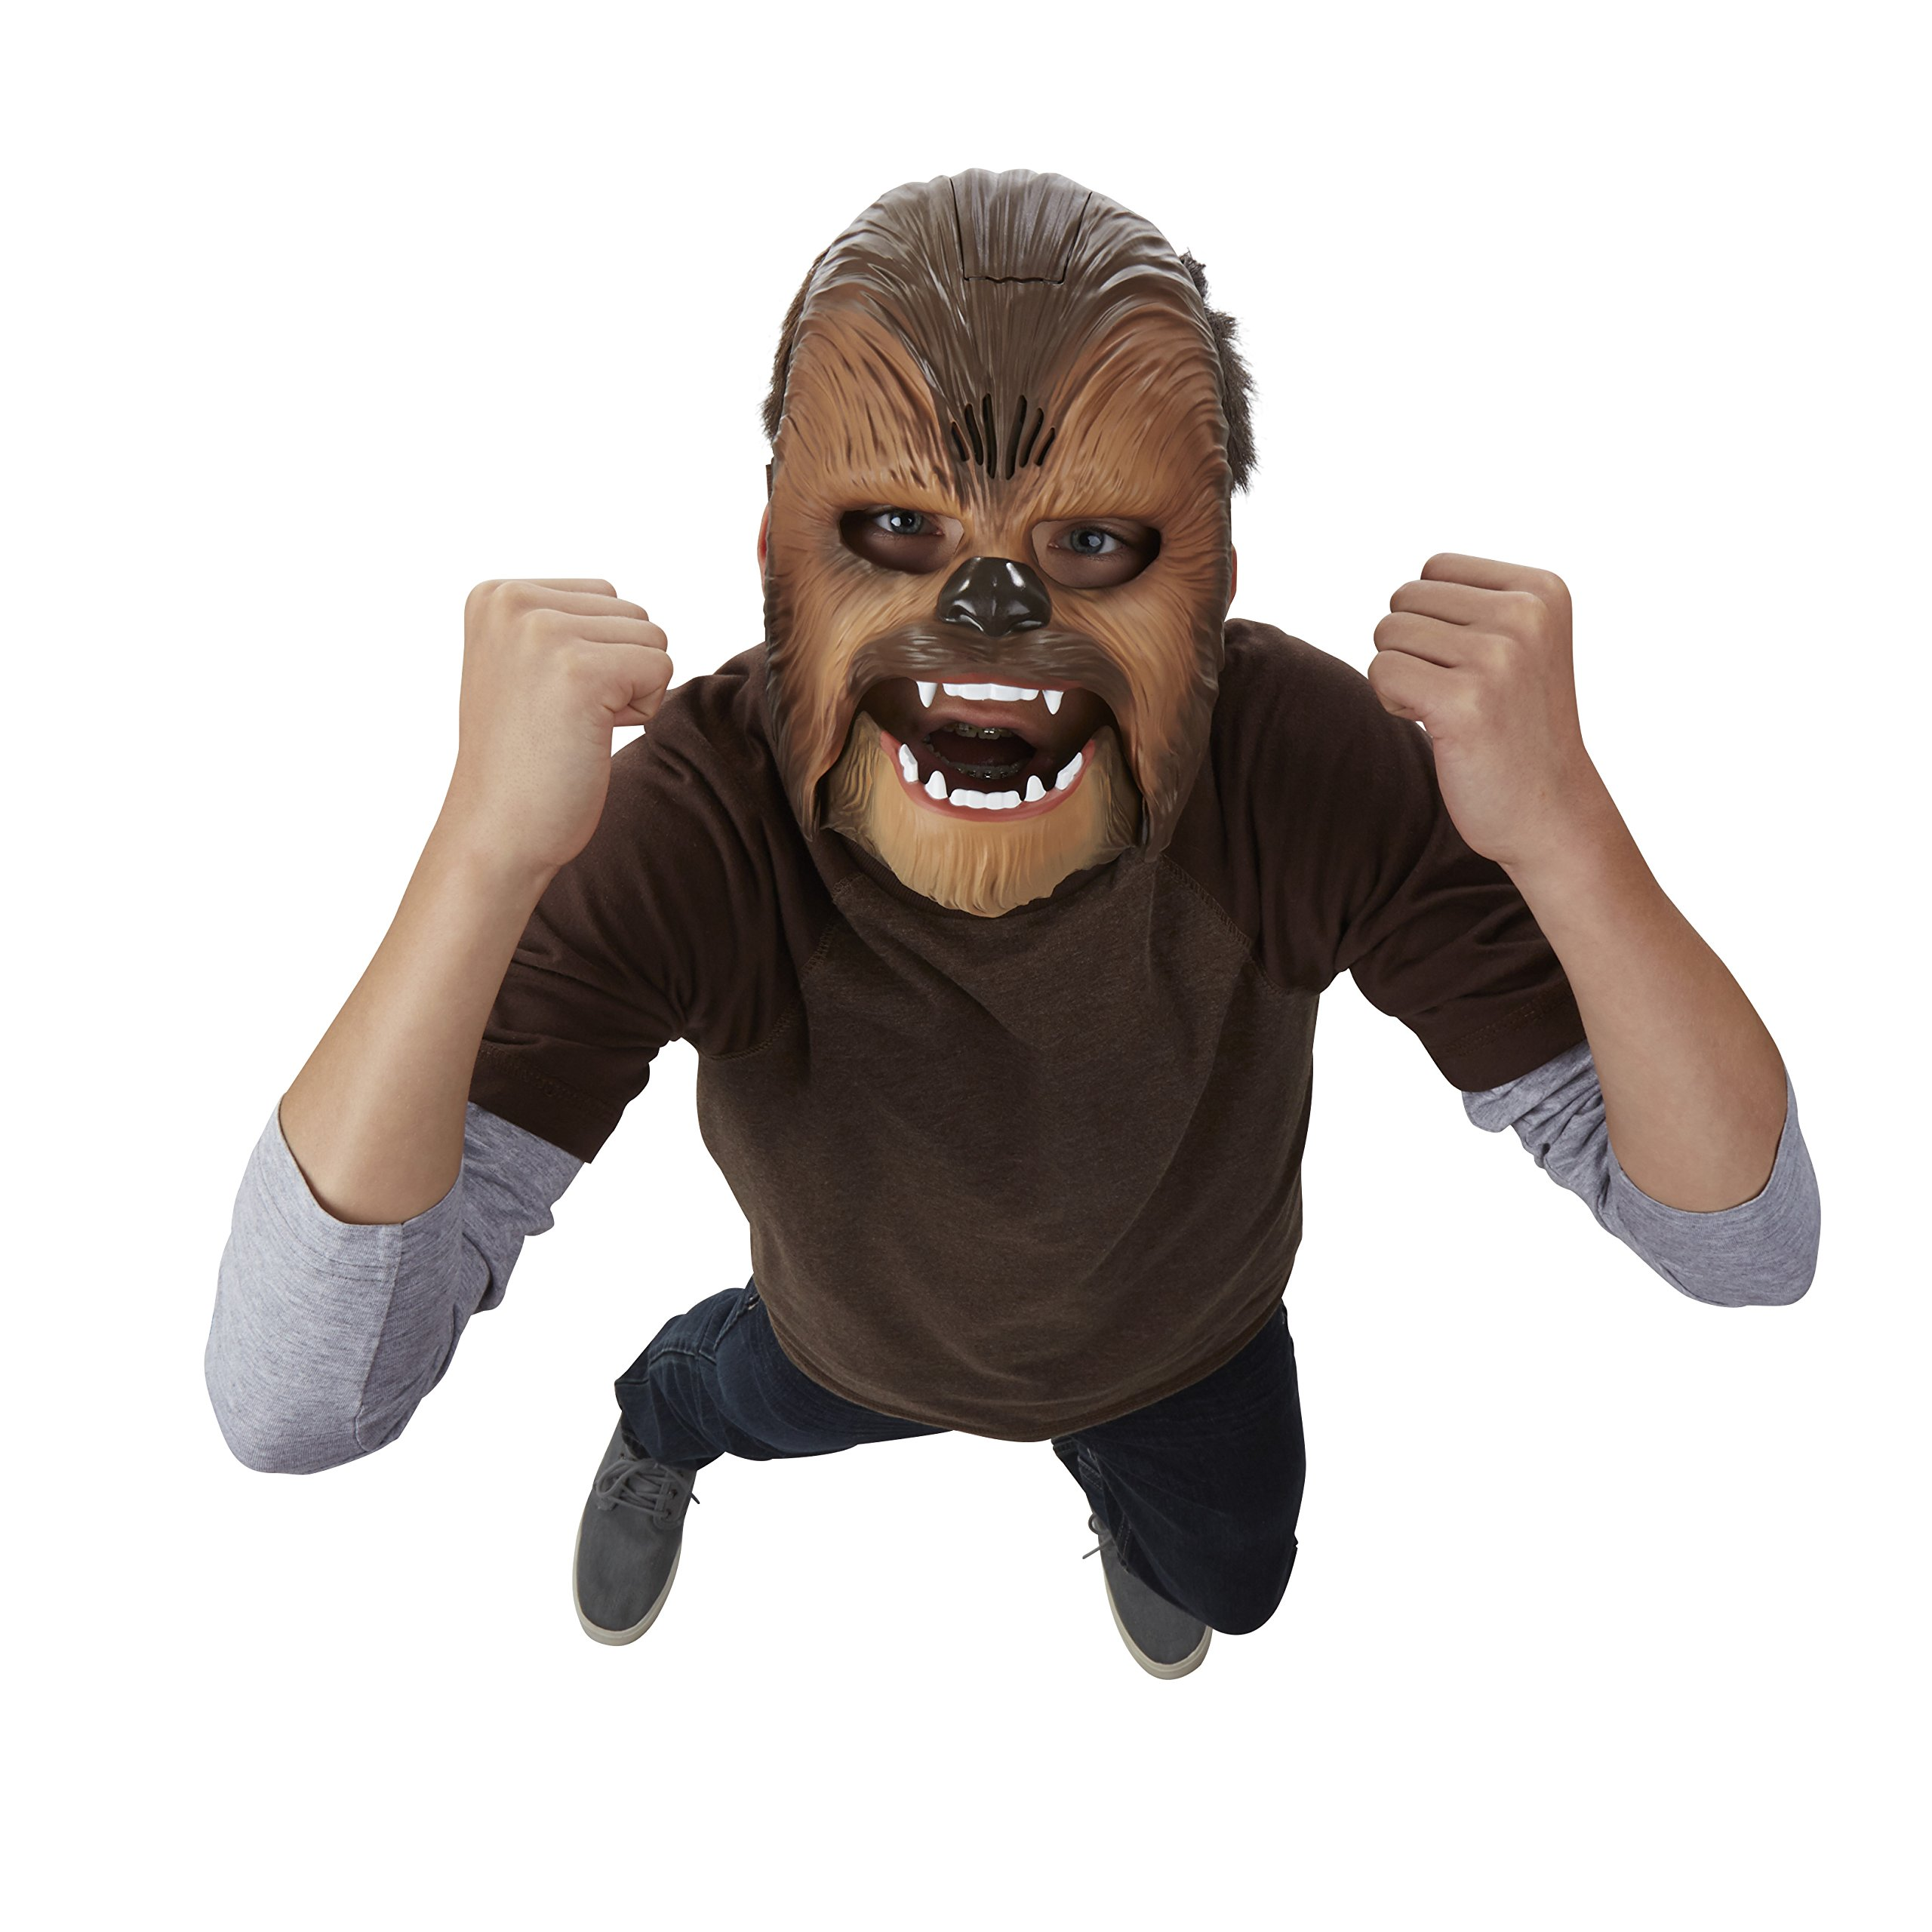 Star Wars Movie Roaring Chewbacca Wookiee Sounds Mask, Ages 5 and up (Amazon Exclusive) by Star Wars (Image #3)